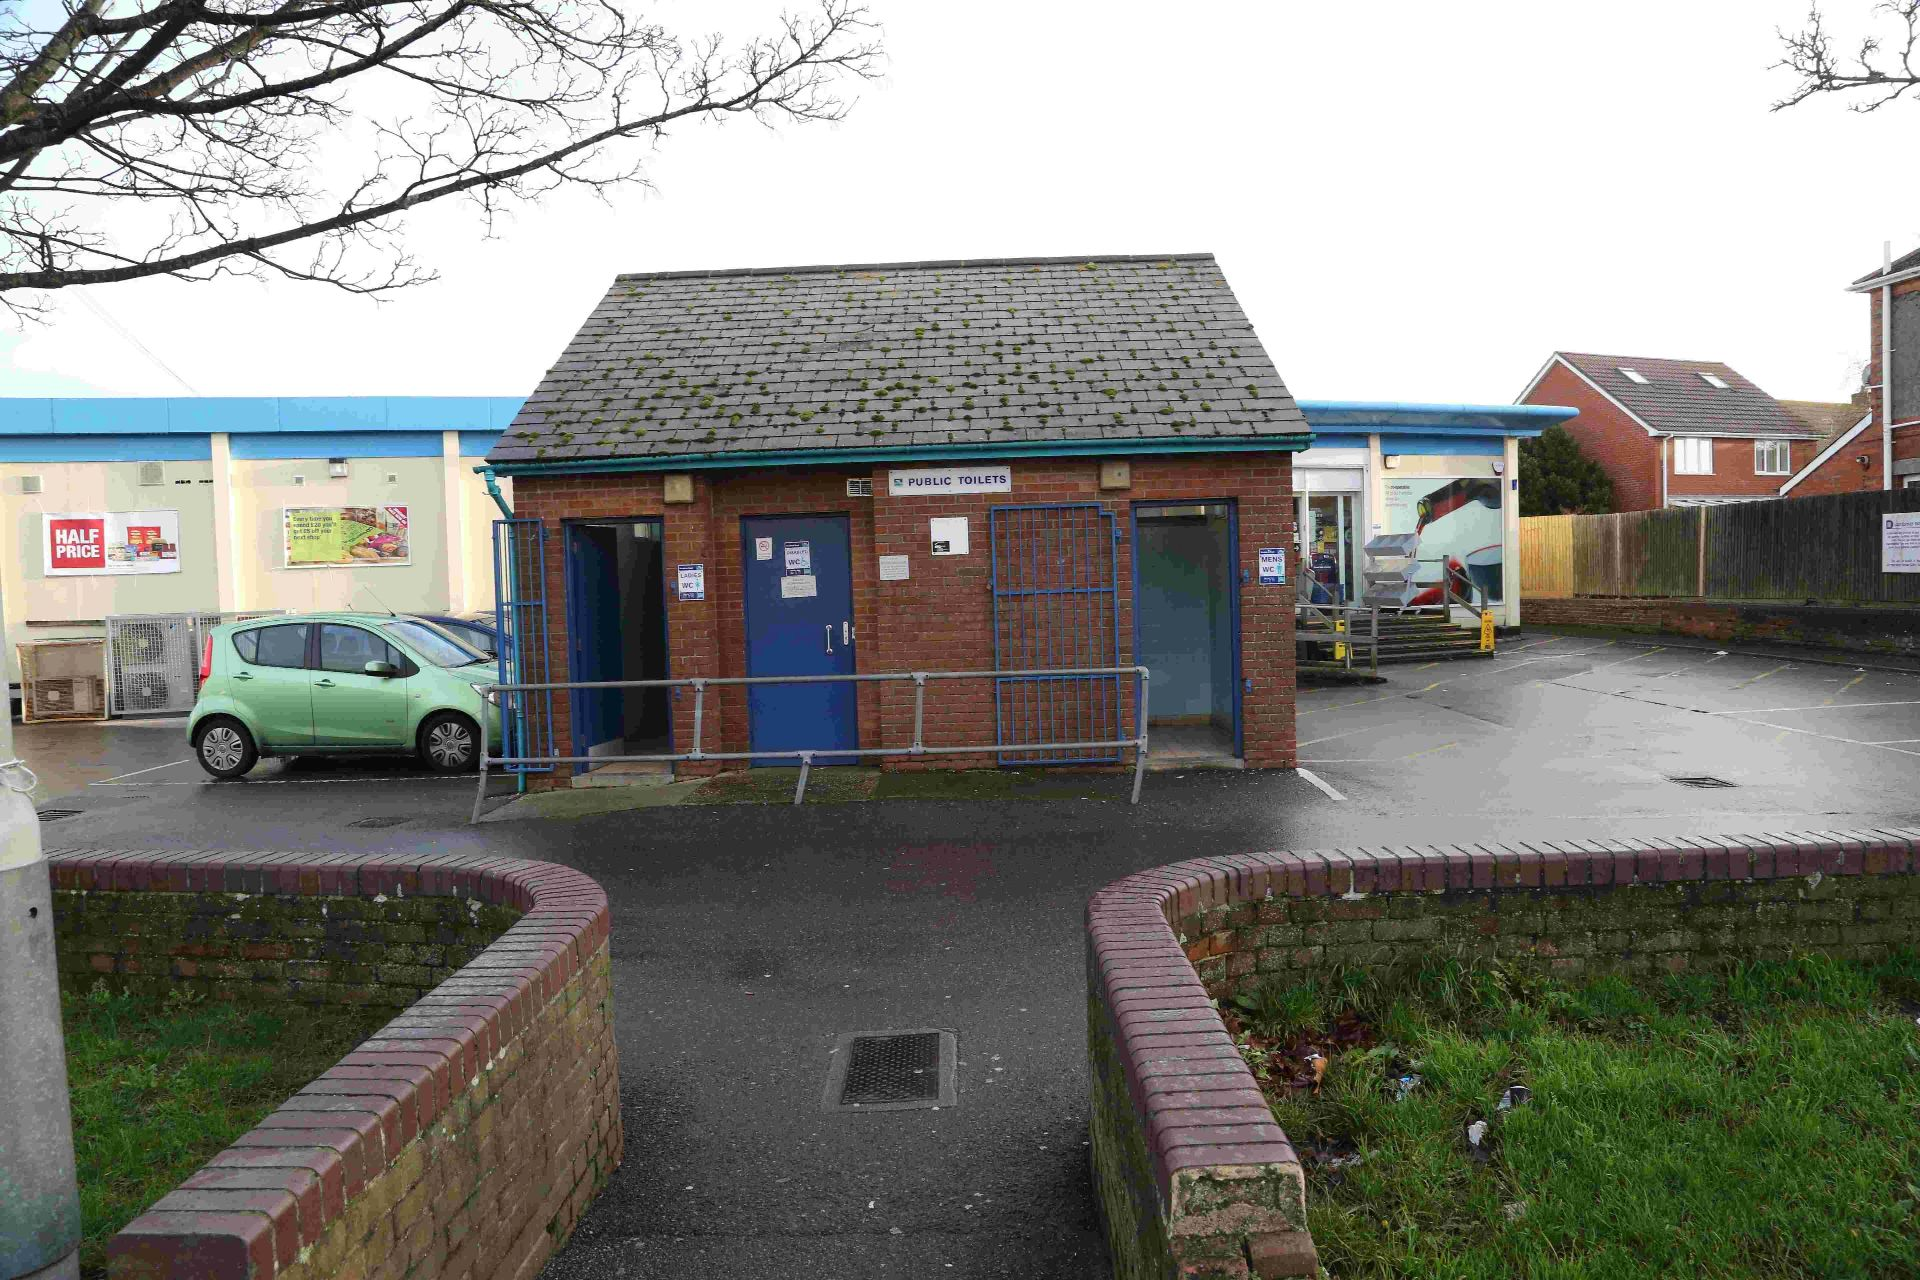 Councillors agree to close Hamworthy's only public toilets to save £10k a year